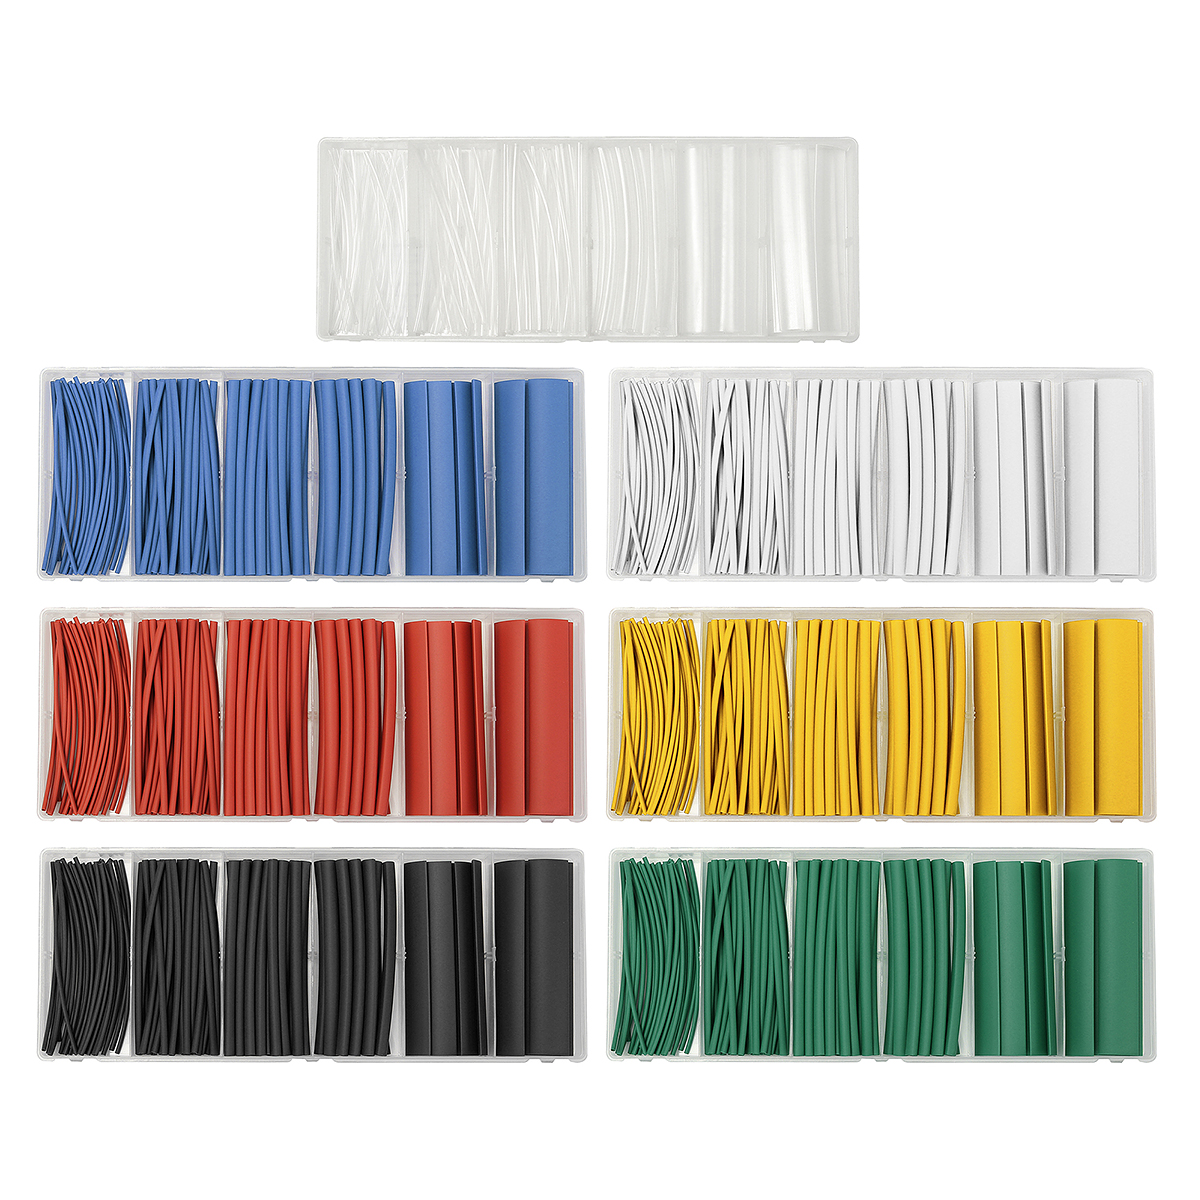 100 PCS Halogen-Free 2:1 Heat Shrink Tubing Wire Cable Sleeving 6 Size 7Colors